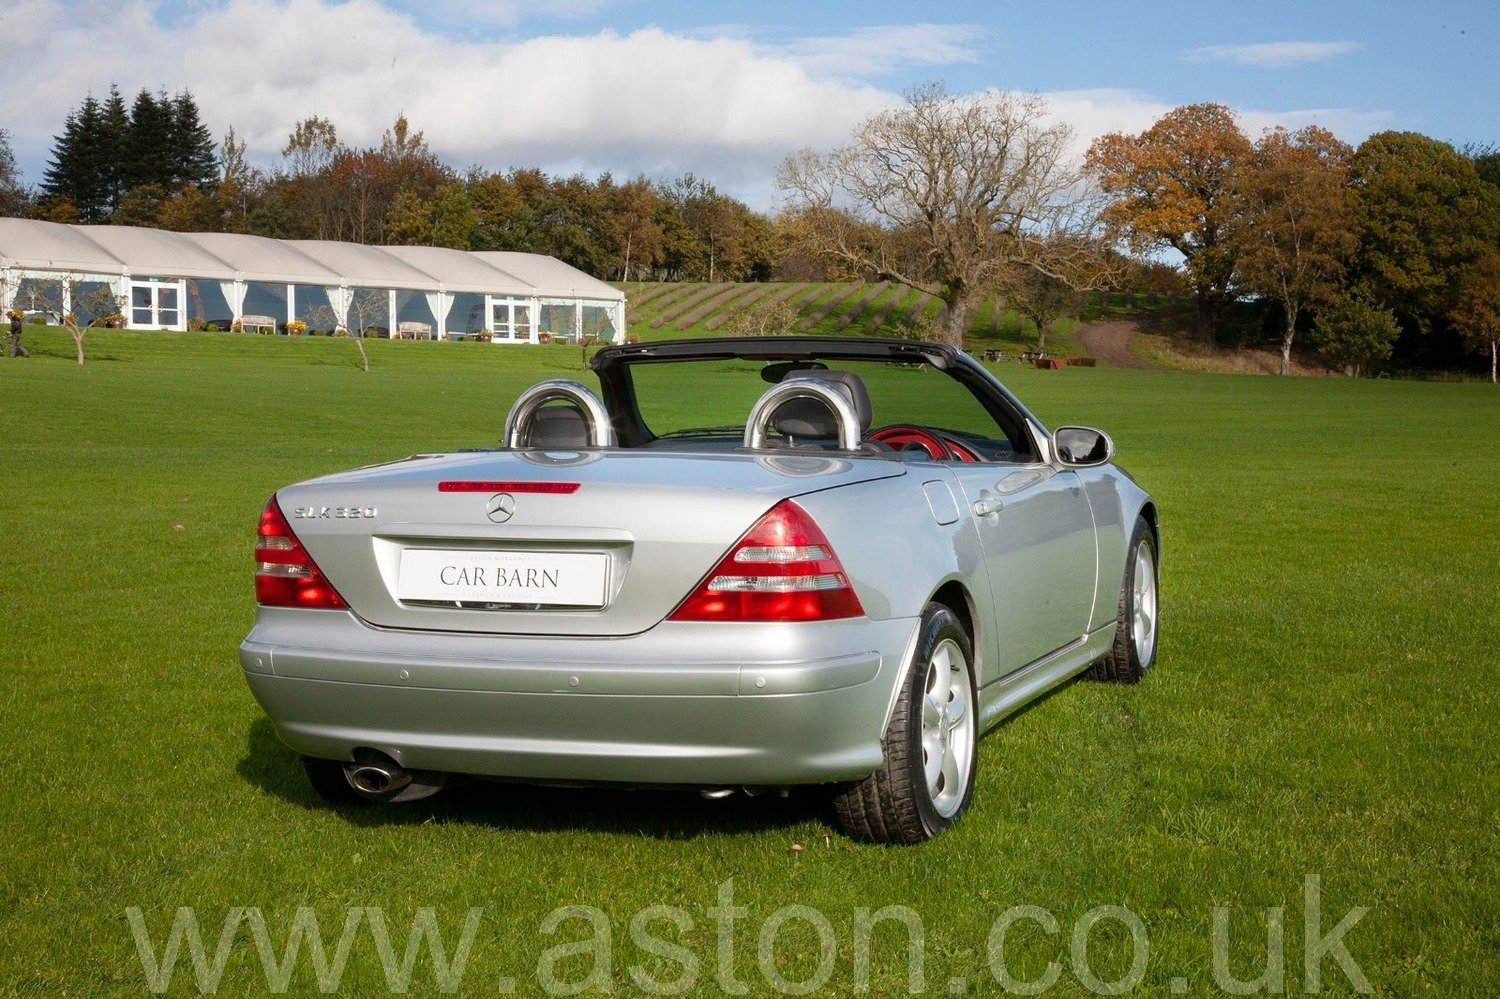 2001 Mercedes SLK 320 Auto SOLD (picture 4 of 6)